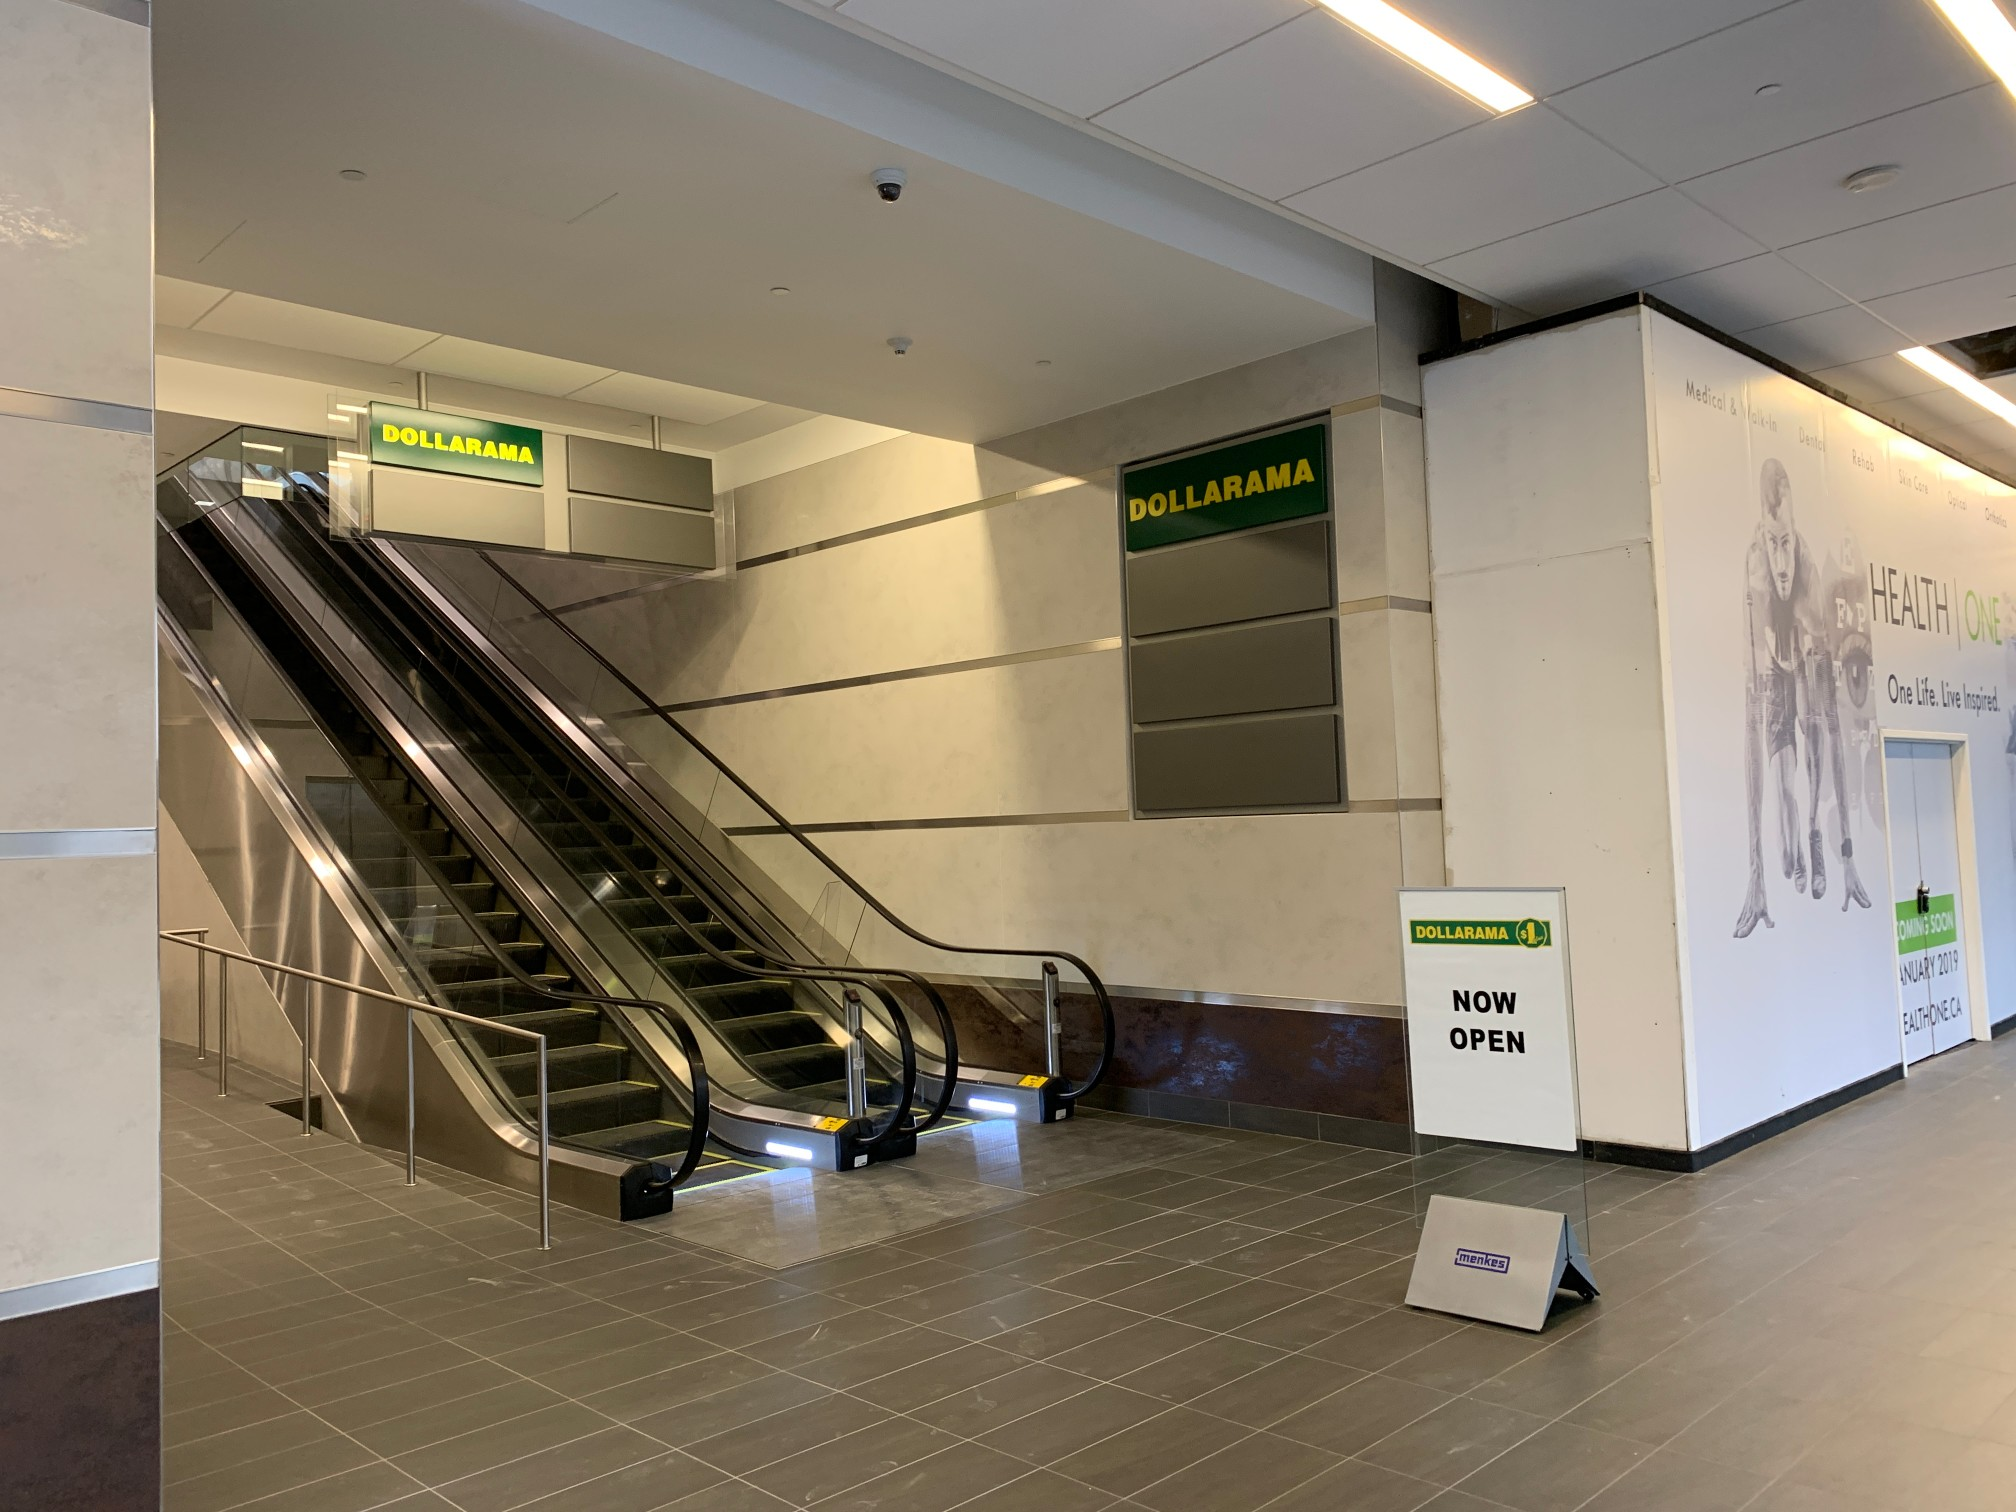 Winter Rostie Group Scoop Dollarama Escalator Location